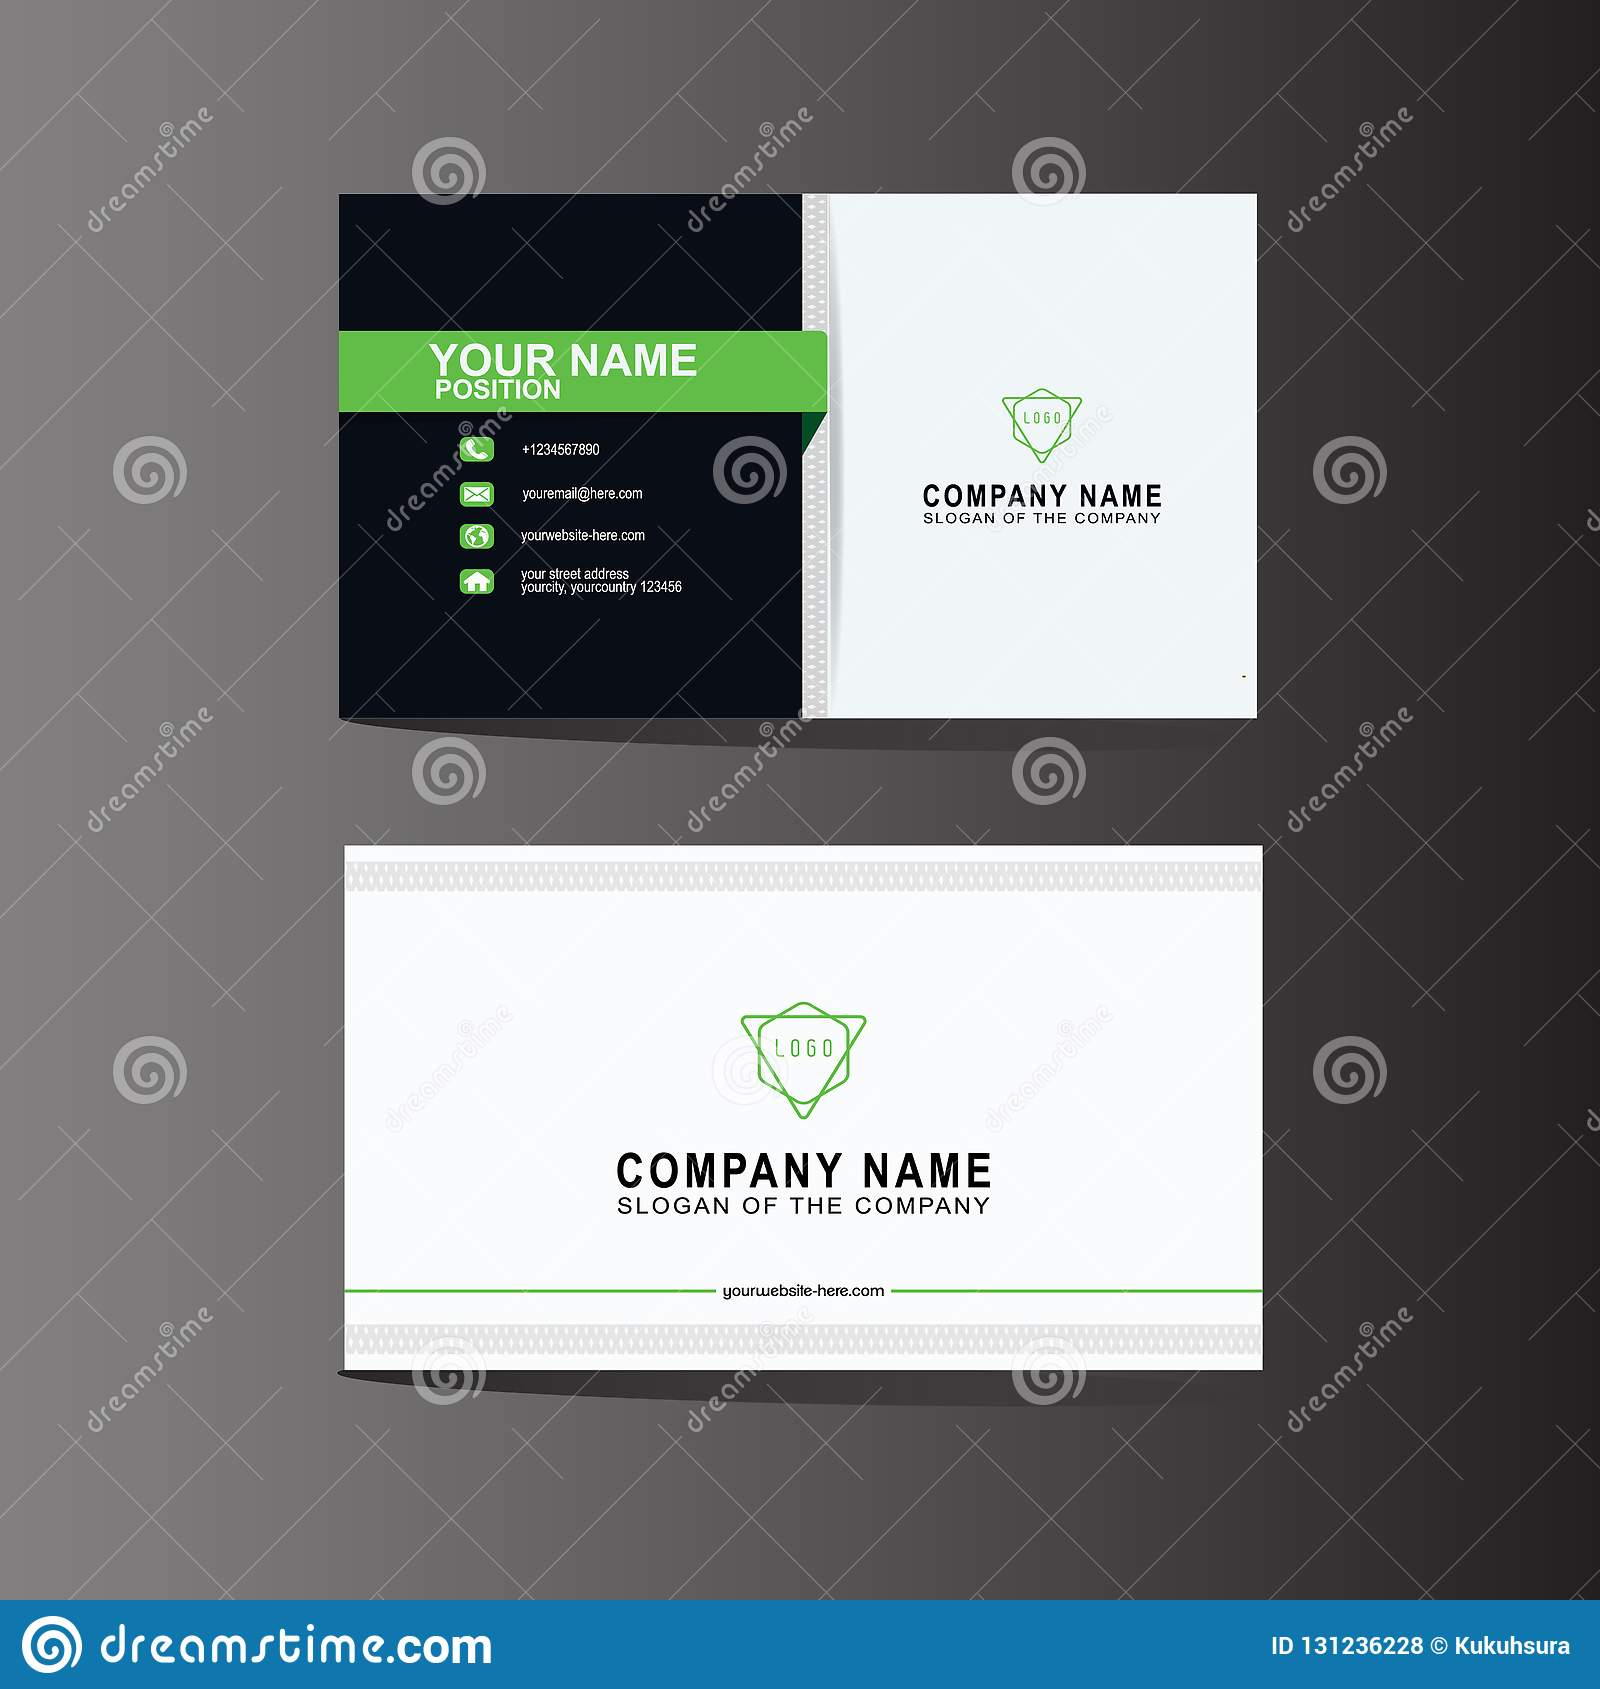 Modern Business Card Template Background Vector Illustration